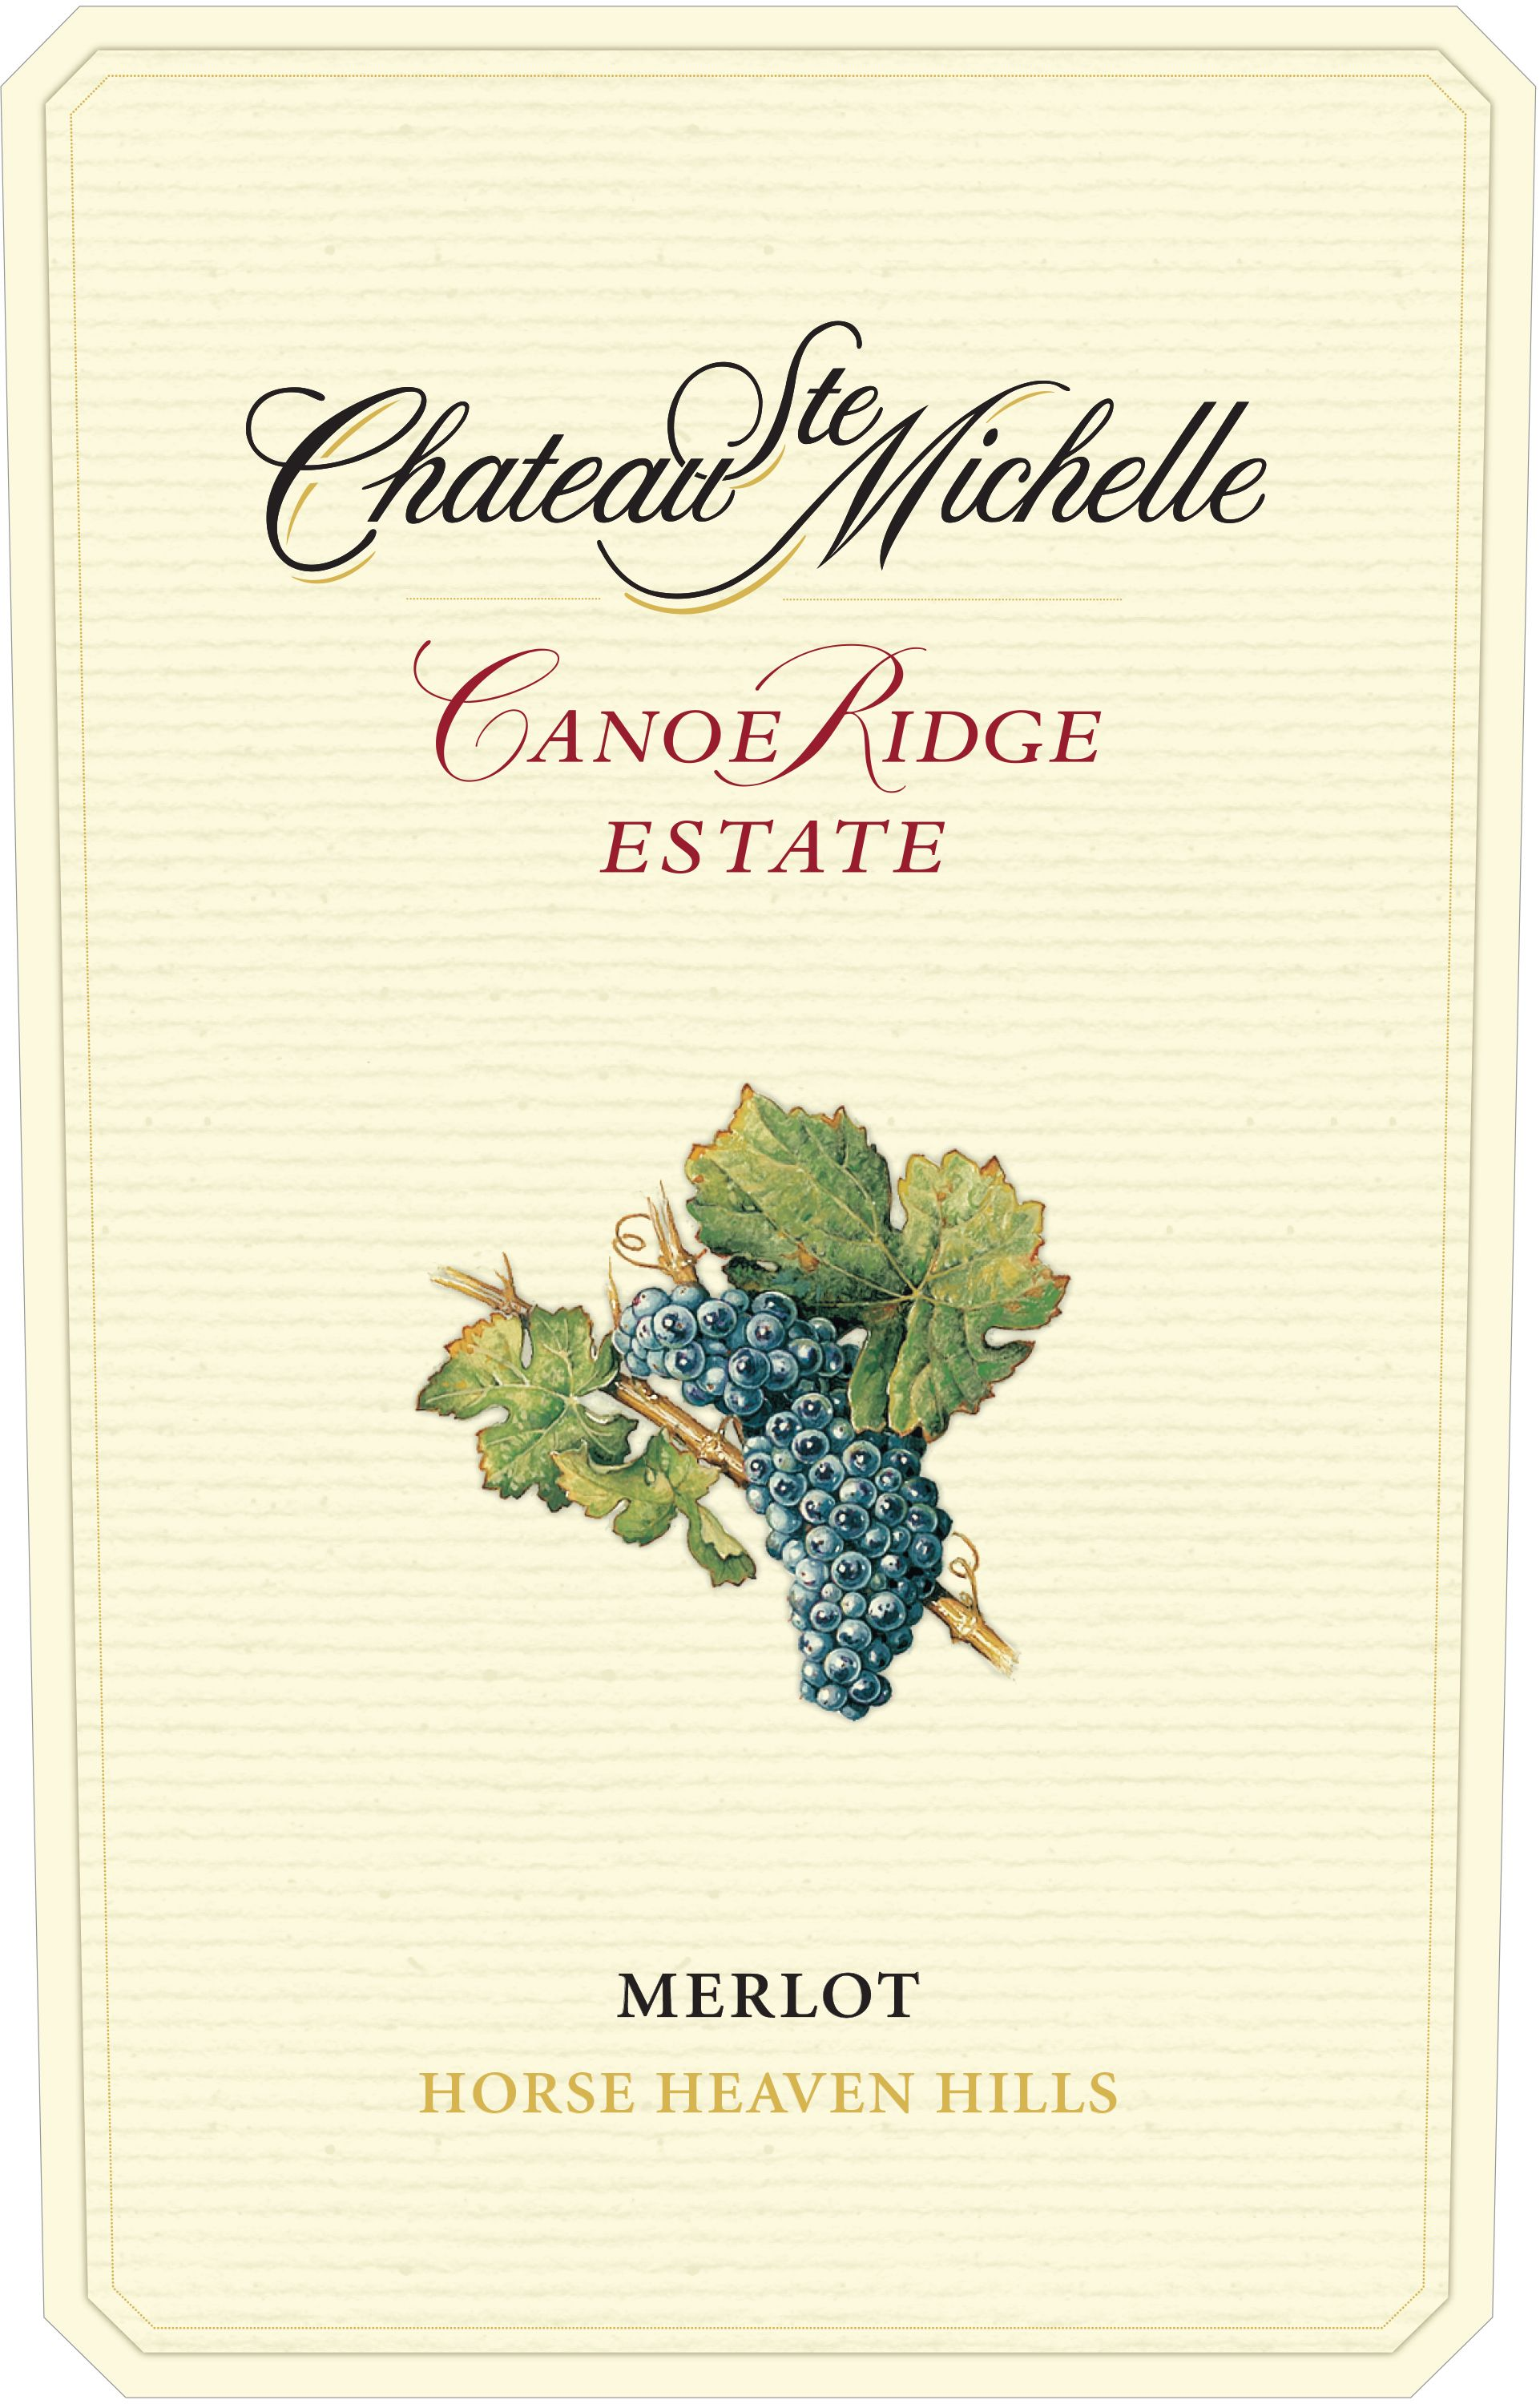 Chateau Ste. Michelle Canoe Ridge Estate Vineyard Merlot 2014  Front Label